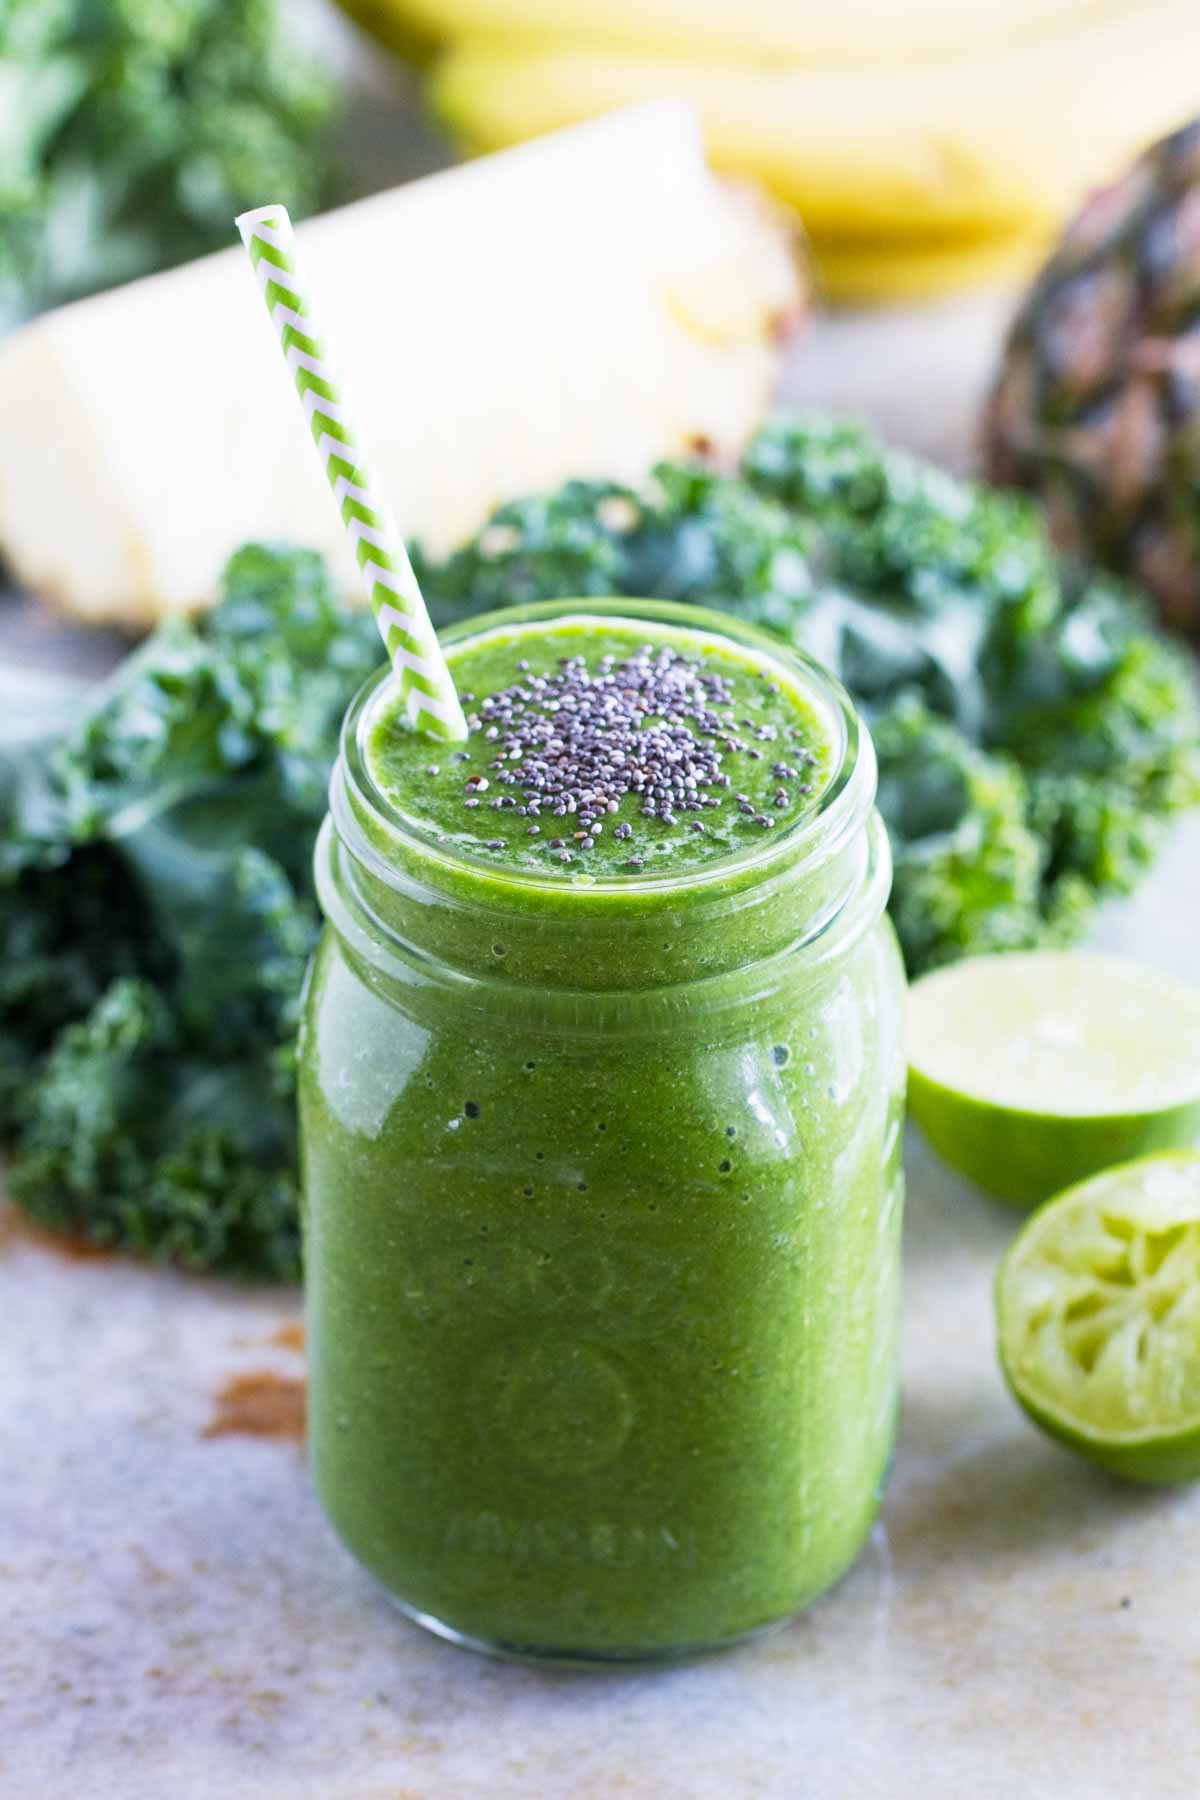 Delicious Smoothie Recipes  Healthy Pineapple Banana Kale Smoothie Recipe Taste and Tell